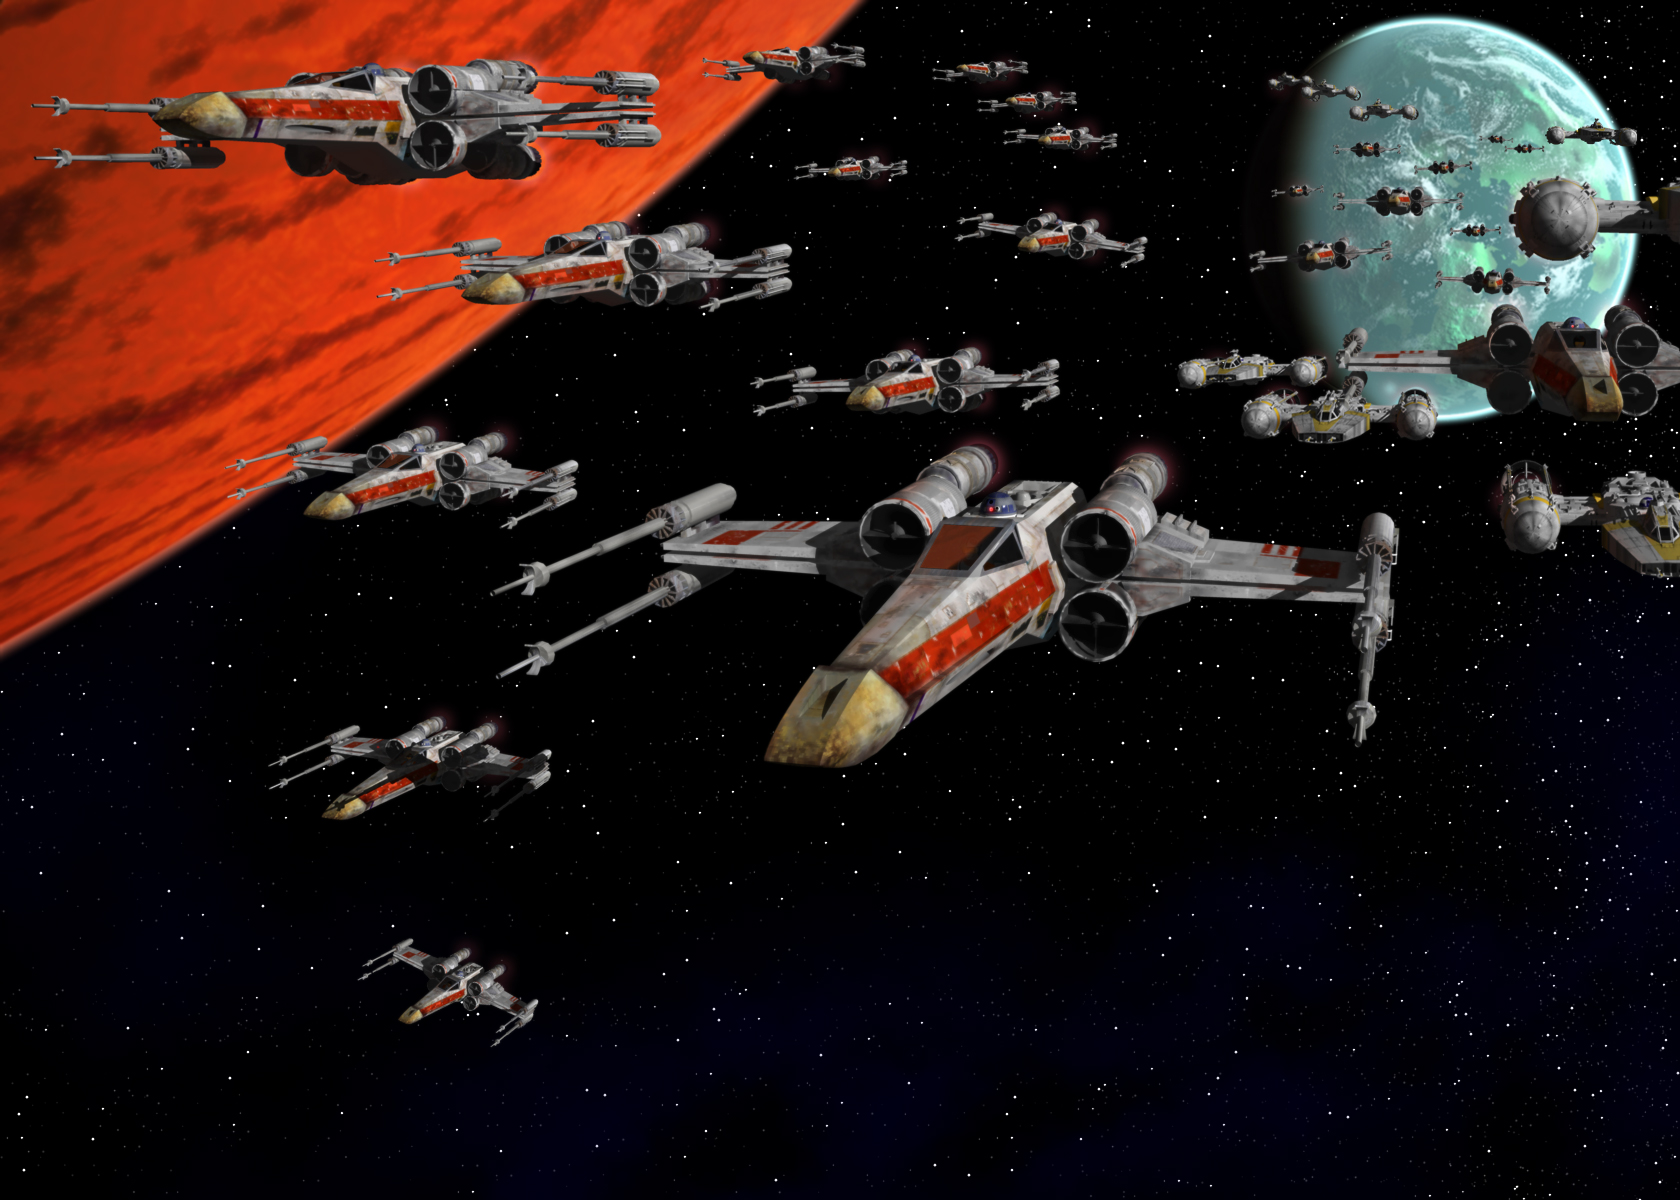 Star Wars Wallpaper Widescreen 10